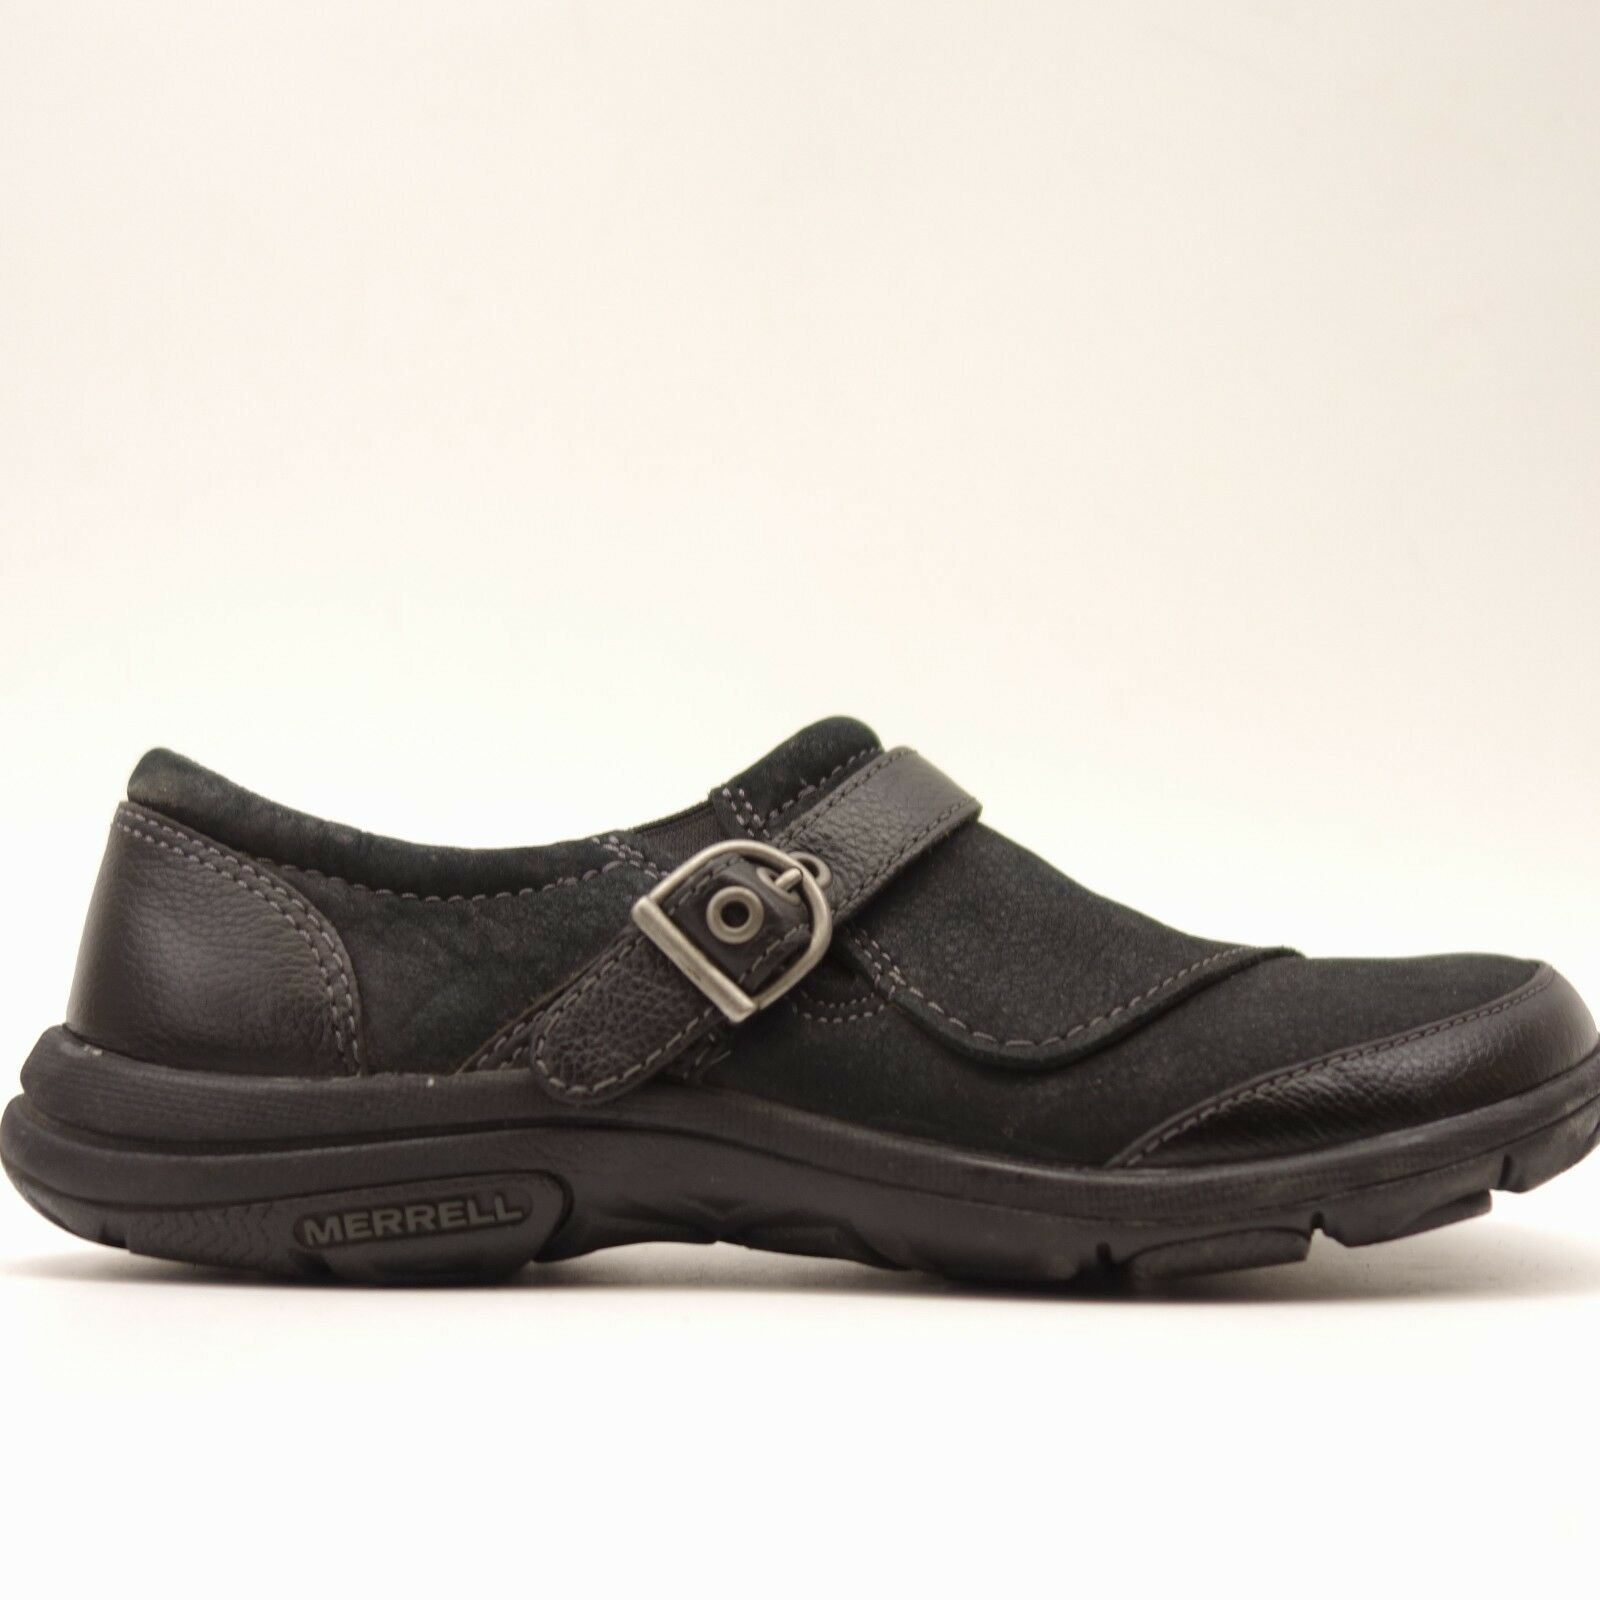 Merrell Womens Dassie Buckle Slip On Leather Black  Loafer Shoes Size 6.5